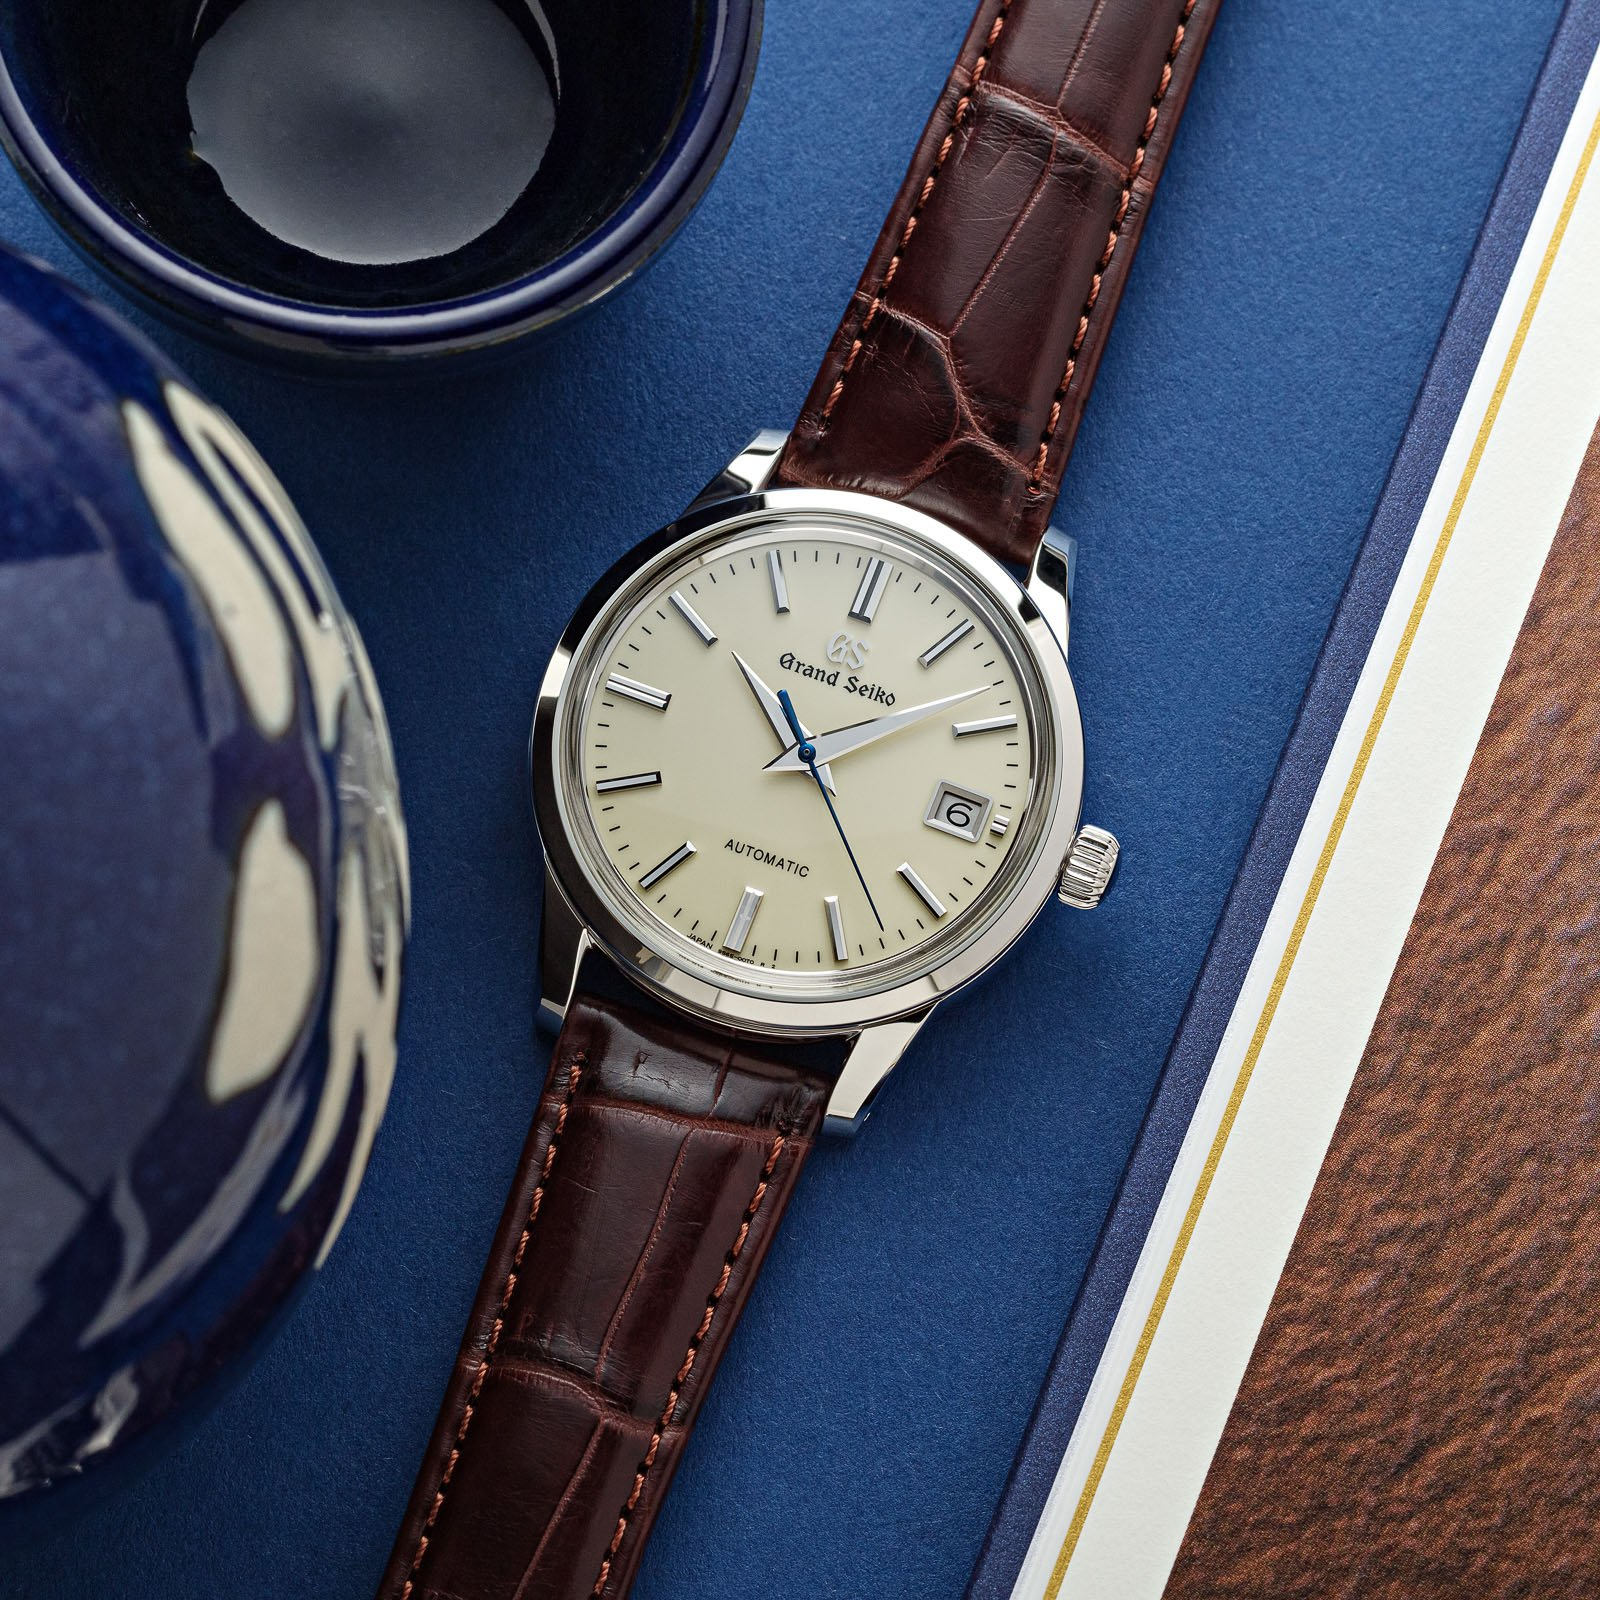 A classic ivory dial dress watch with a blue second hand on a brown strap.